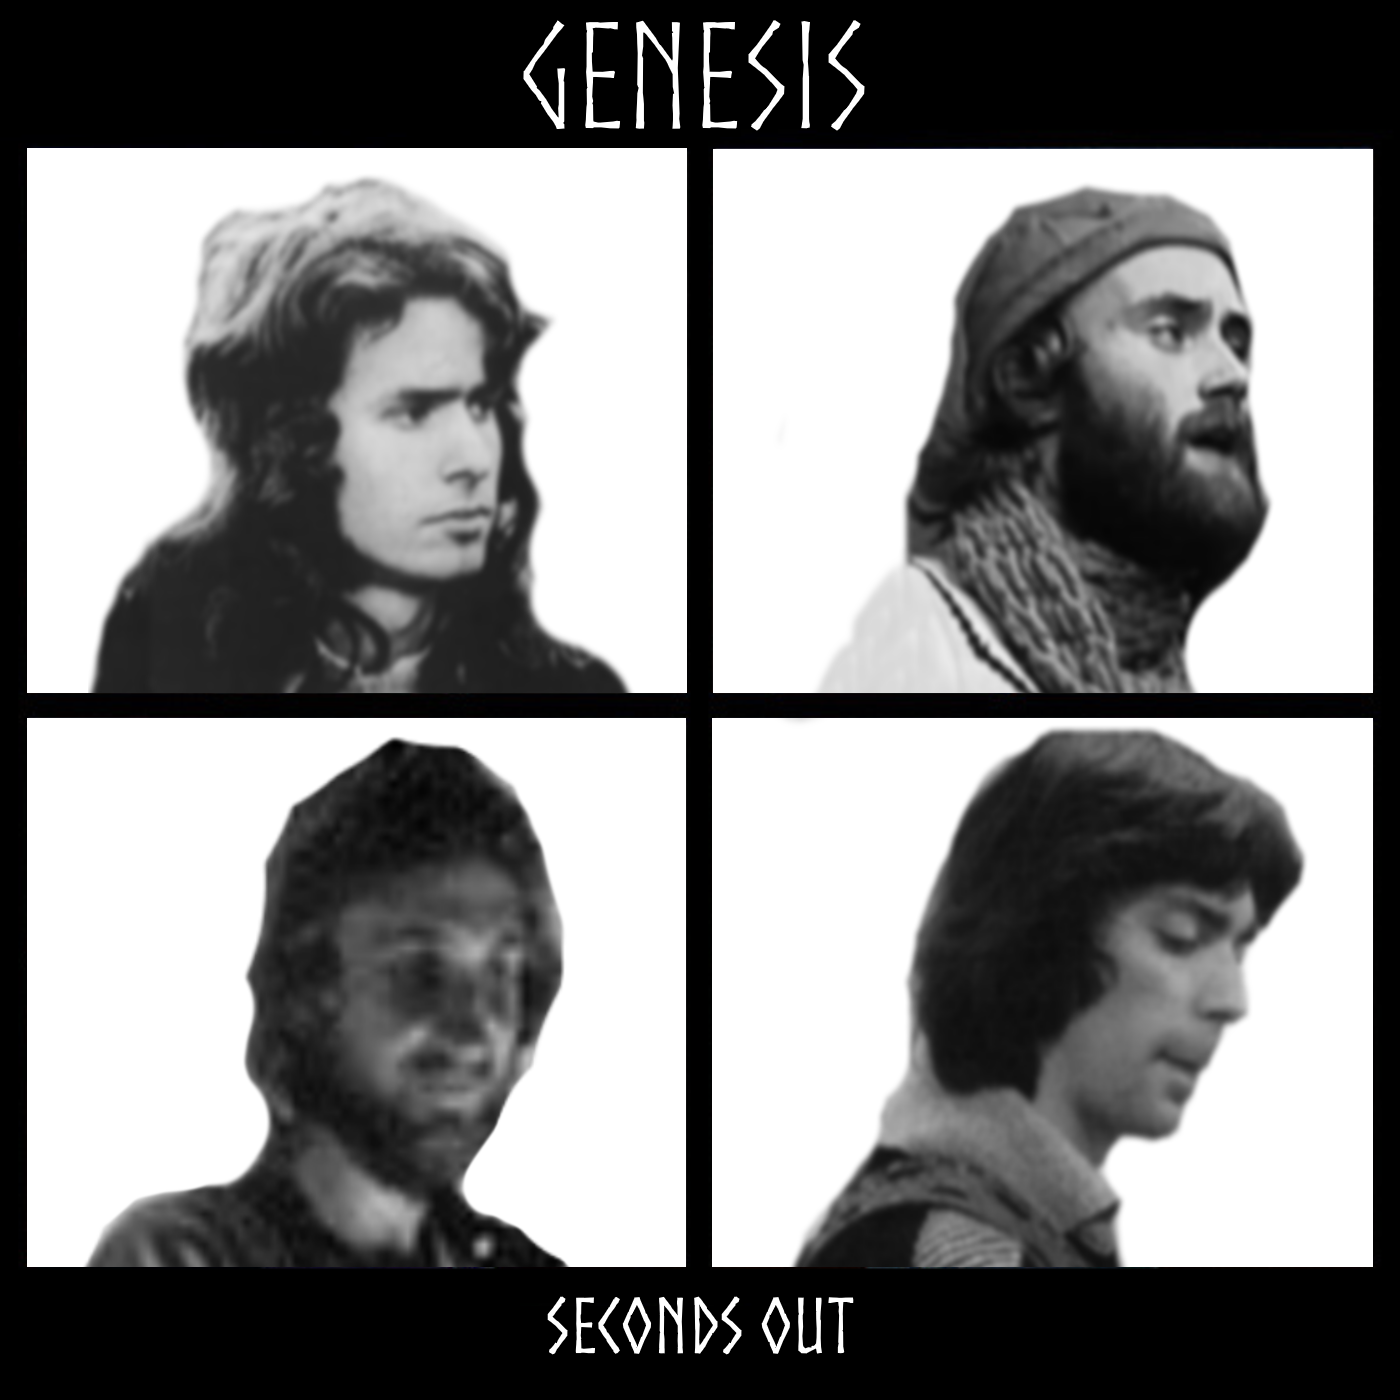 Genesis - Seconds Out box cover